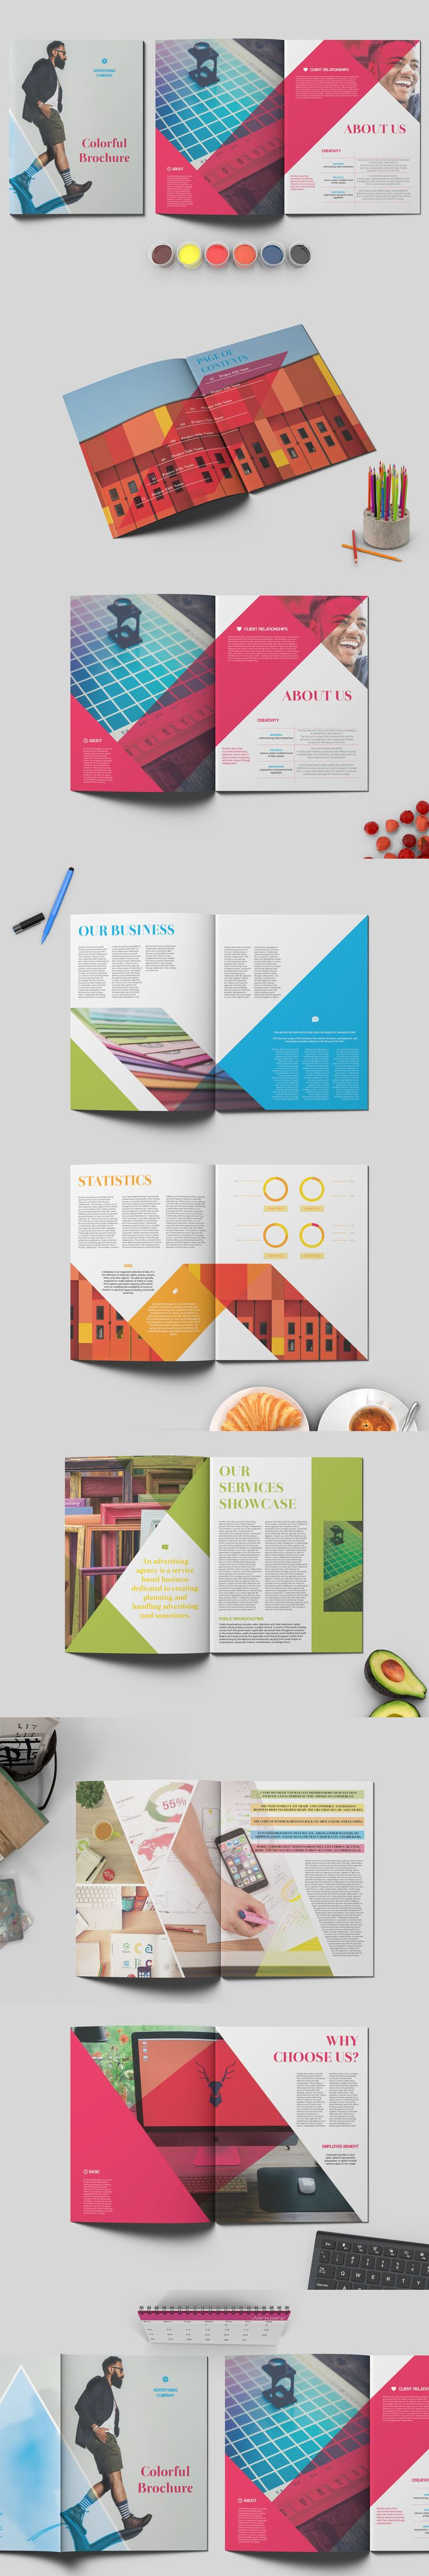 Colorful Business Brochure Template InDesign INDD - 16 Pages